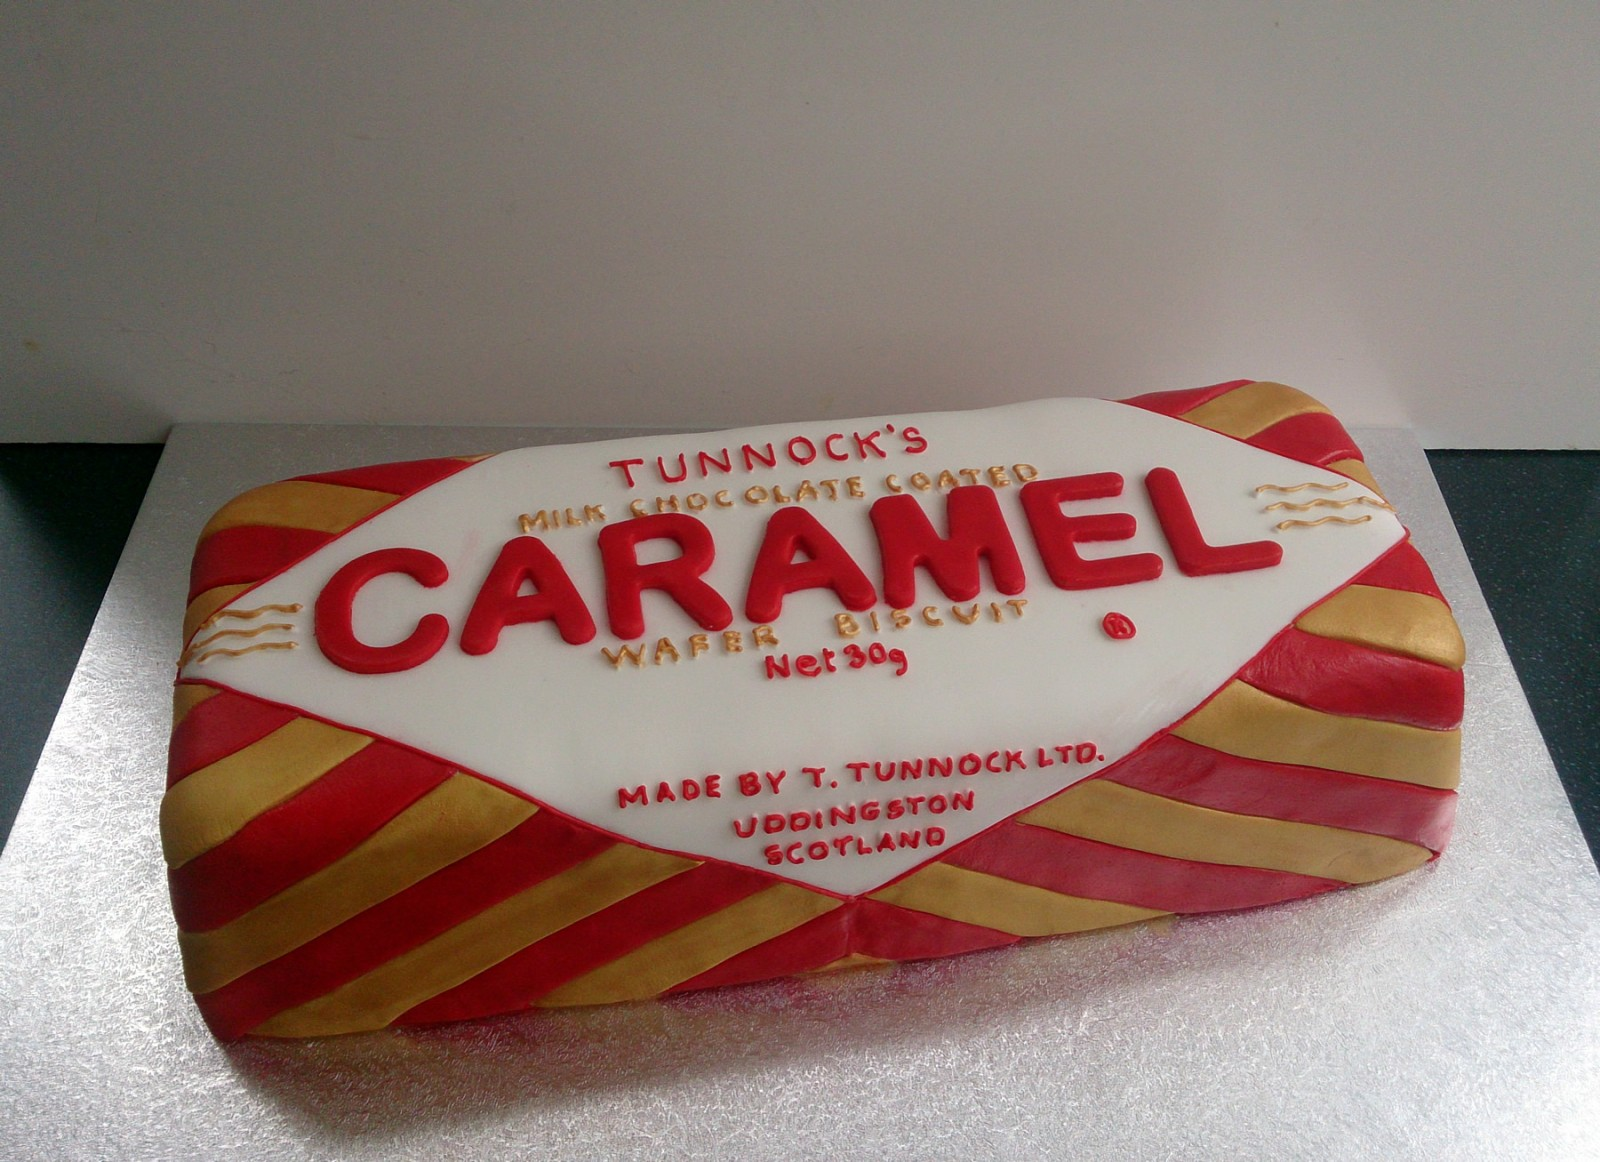 Tunnocks Caramel Chocolate Bar Cake